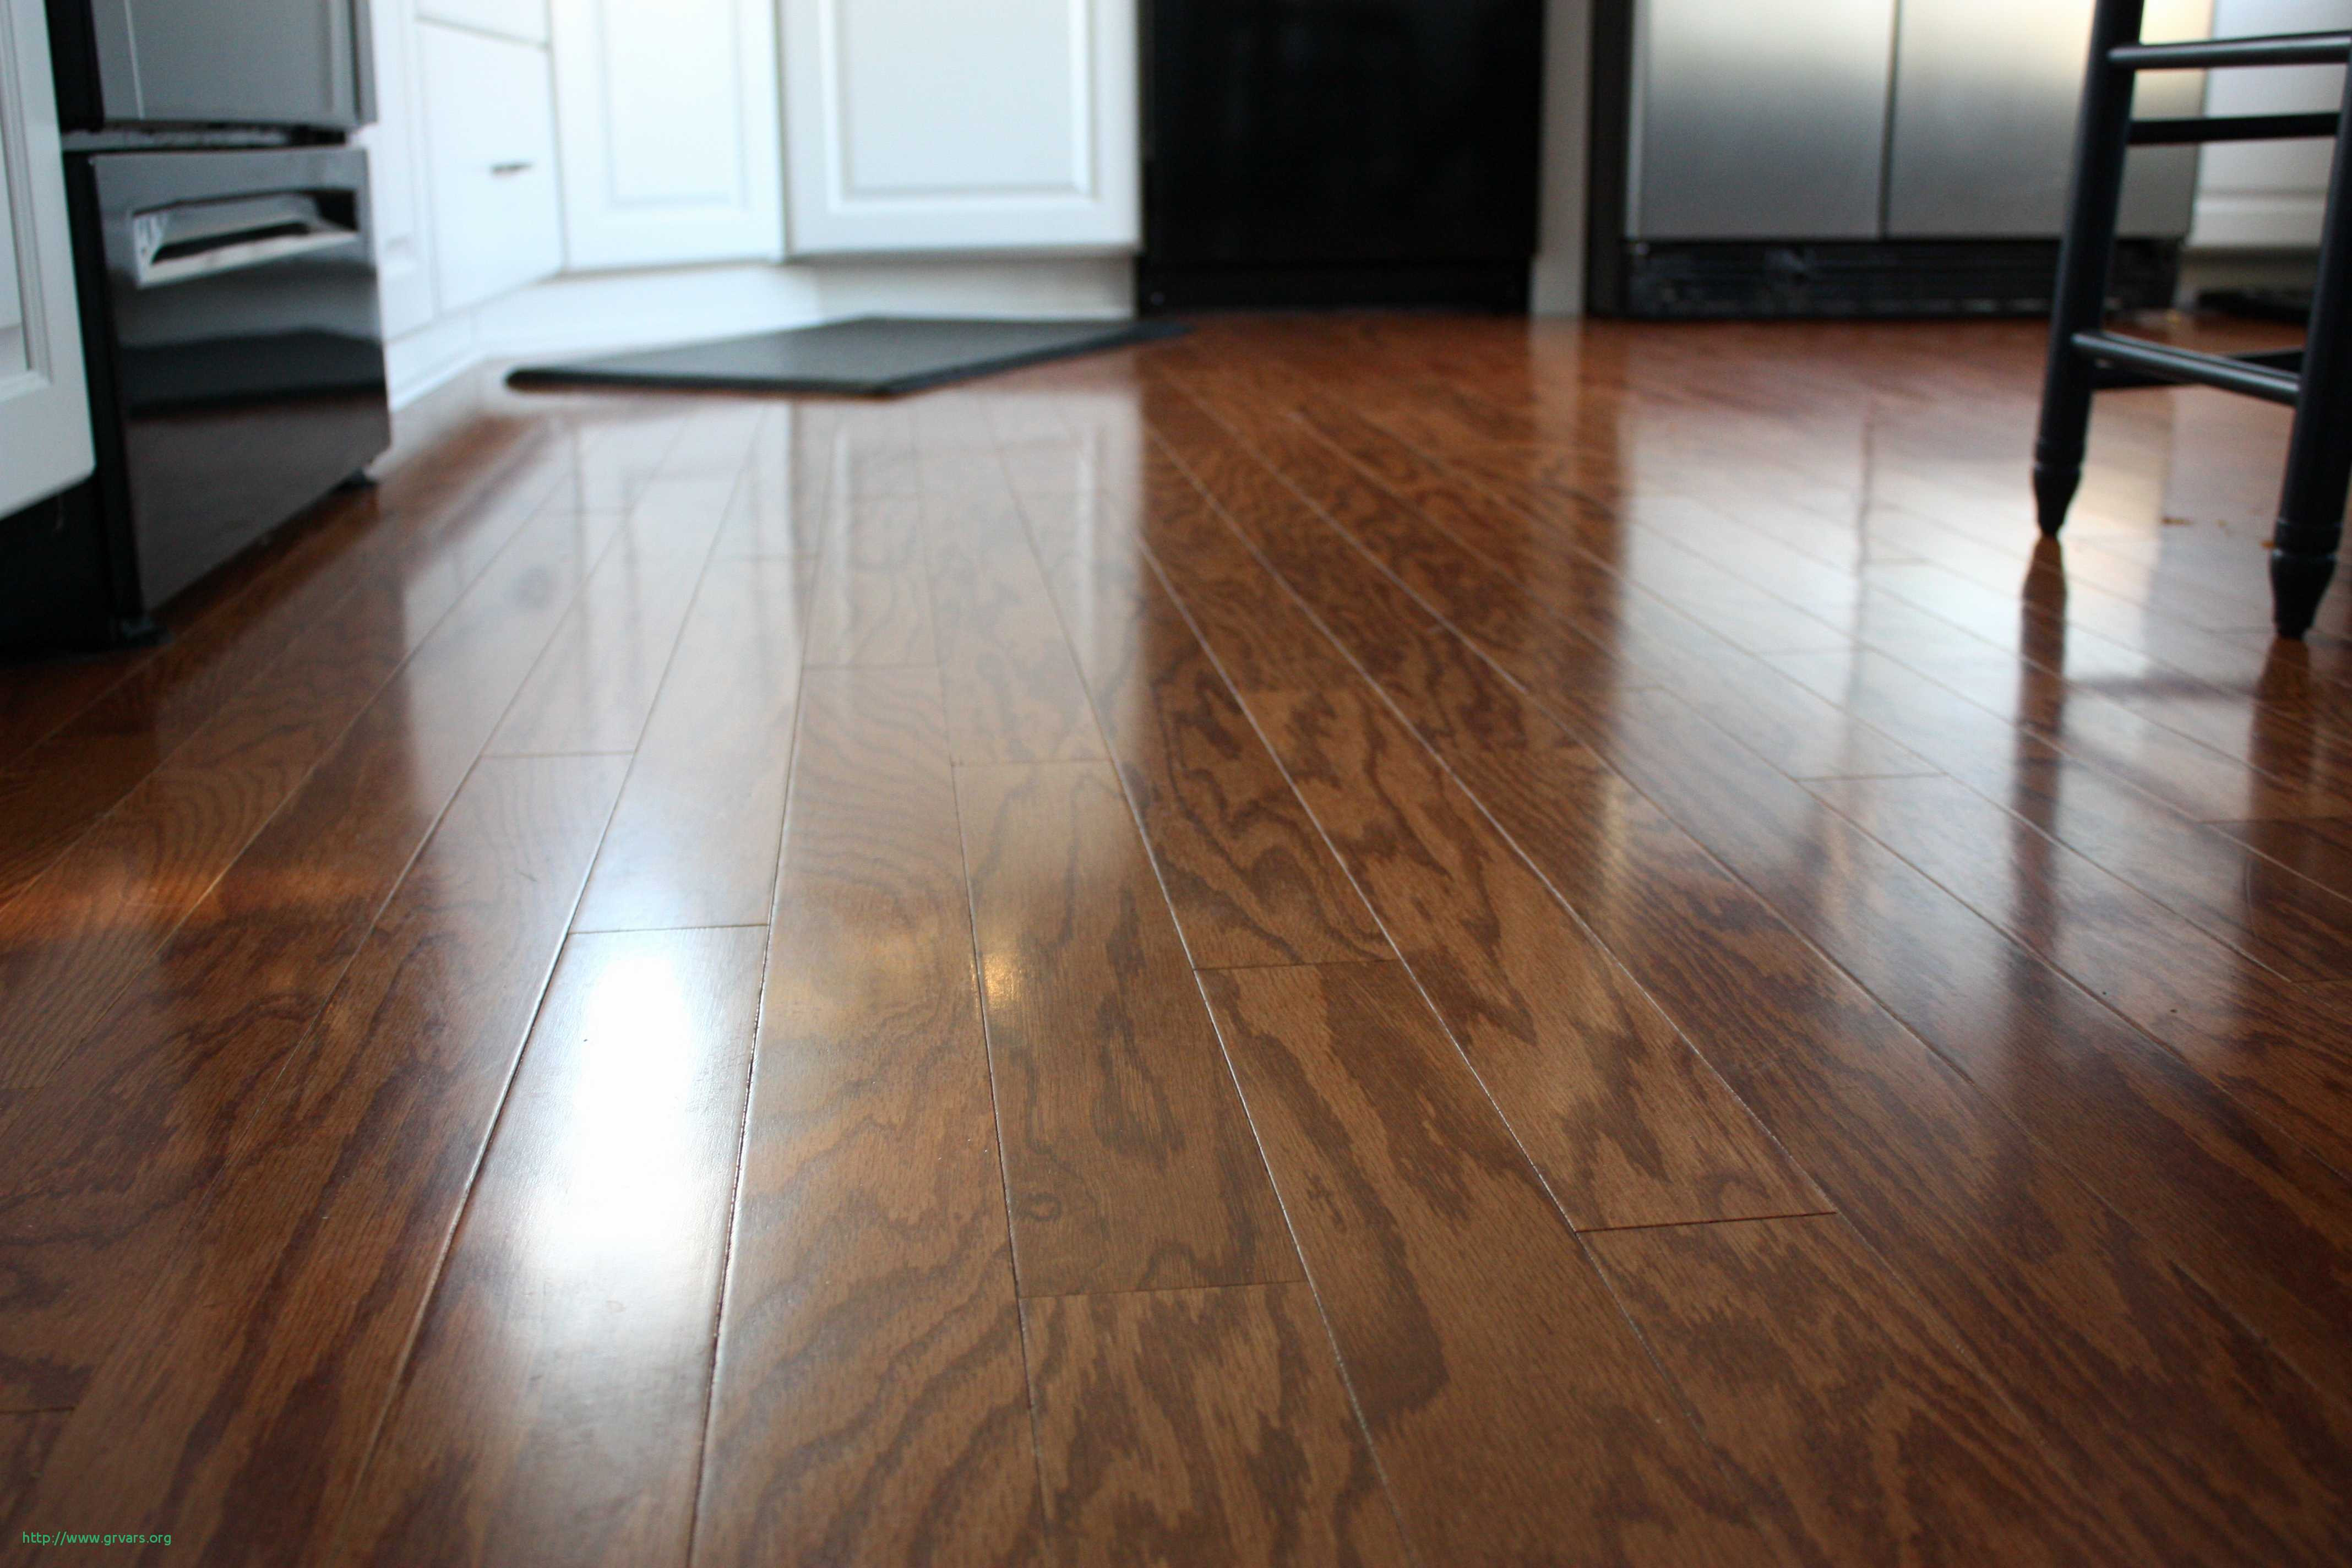 cleaning hardwood floors with vinegar and water of 24 inspirant homemade hardwood floor cleaner without vinegar ideas inside floor floorod cleaning hardwood carpet lake forest il rare image best best wood floor cleaner